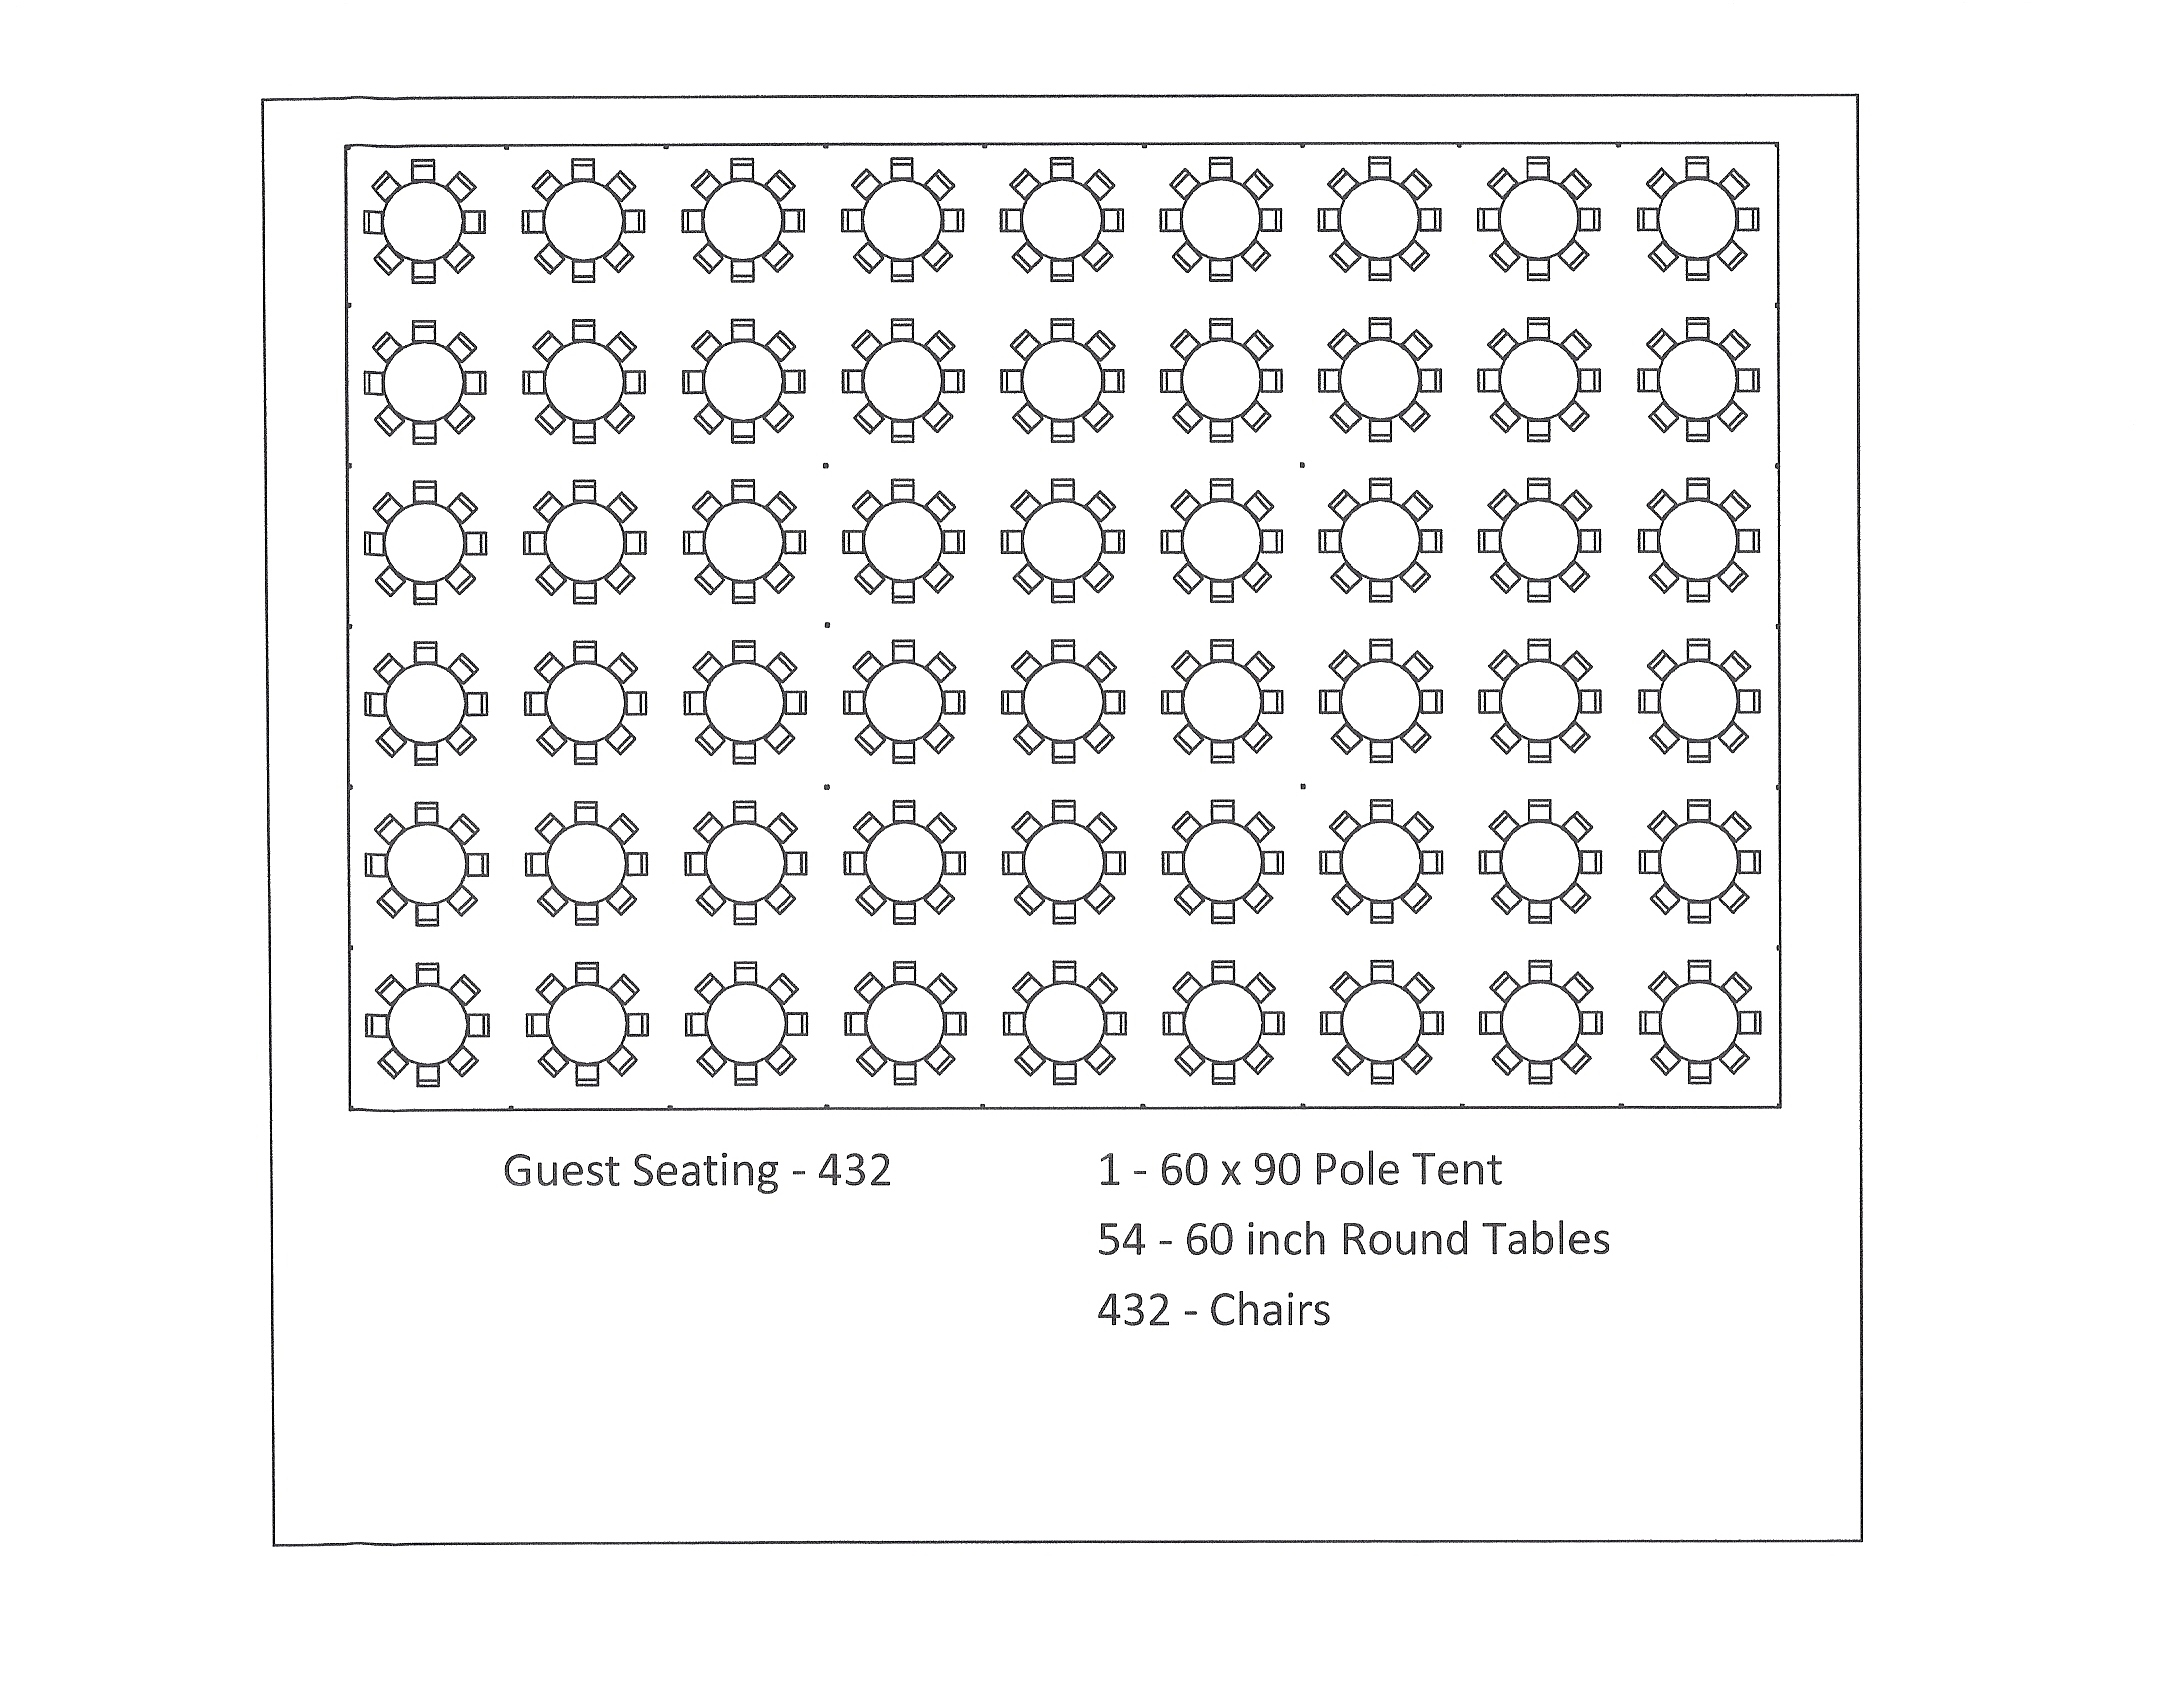 Round table seating capacity 42 round table seats how for 10 person round table seating chart template